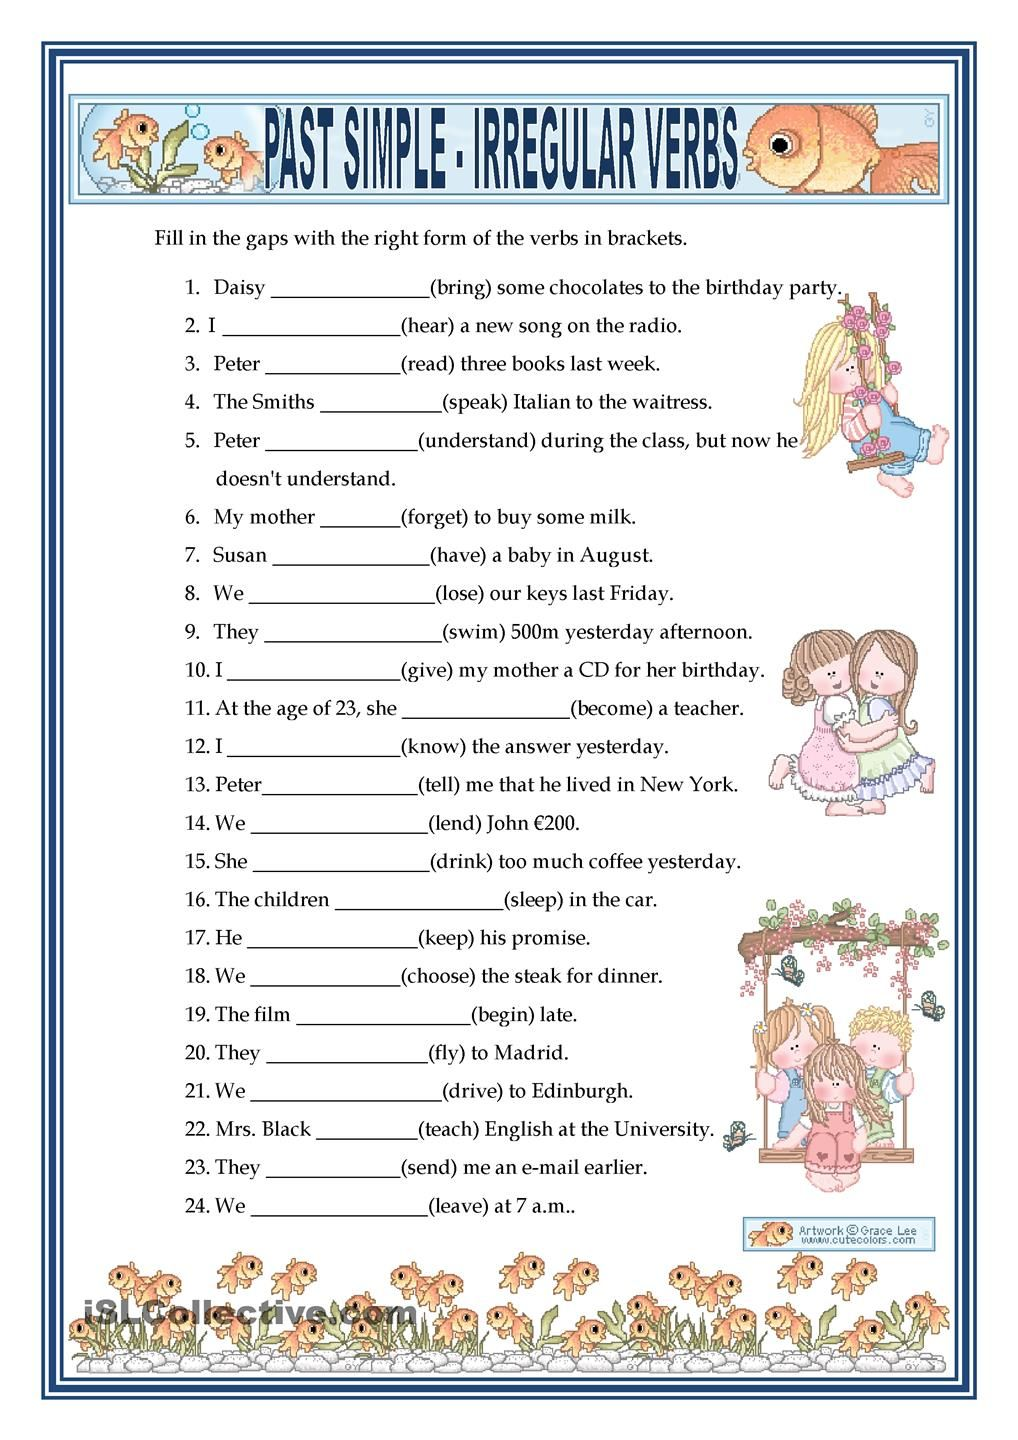 Worksheets Irregular Verbs Worksheet past simple irregular verbs free esl worksheets worksheets